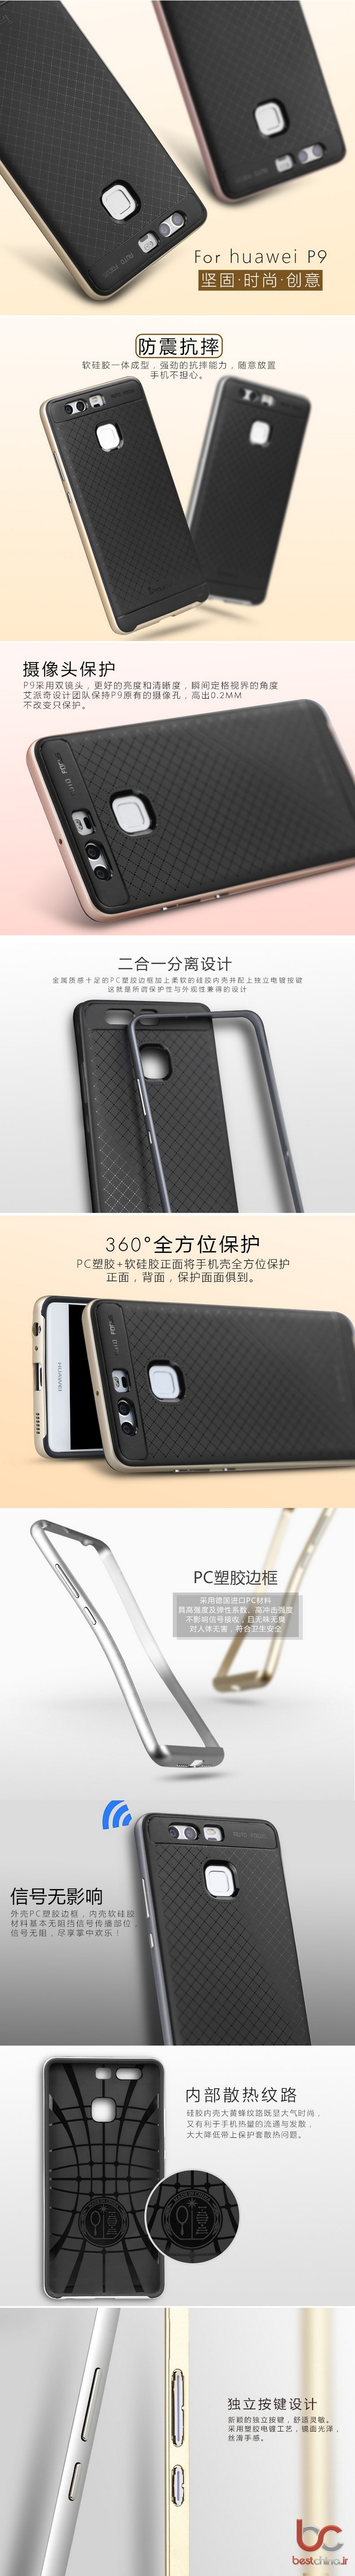 Huawei P9 iPaky Back Cover (4)